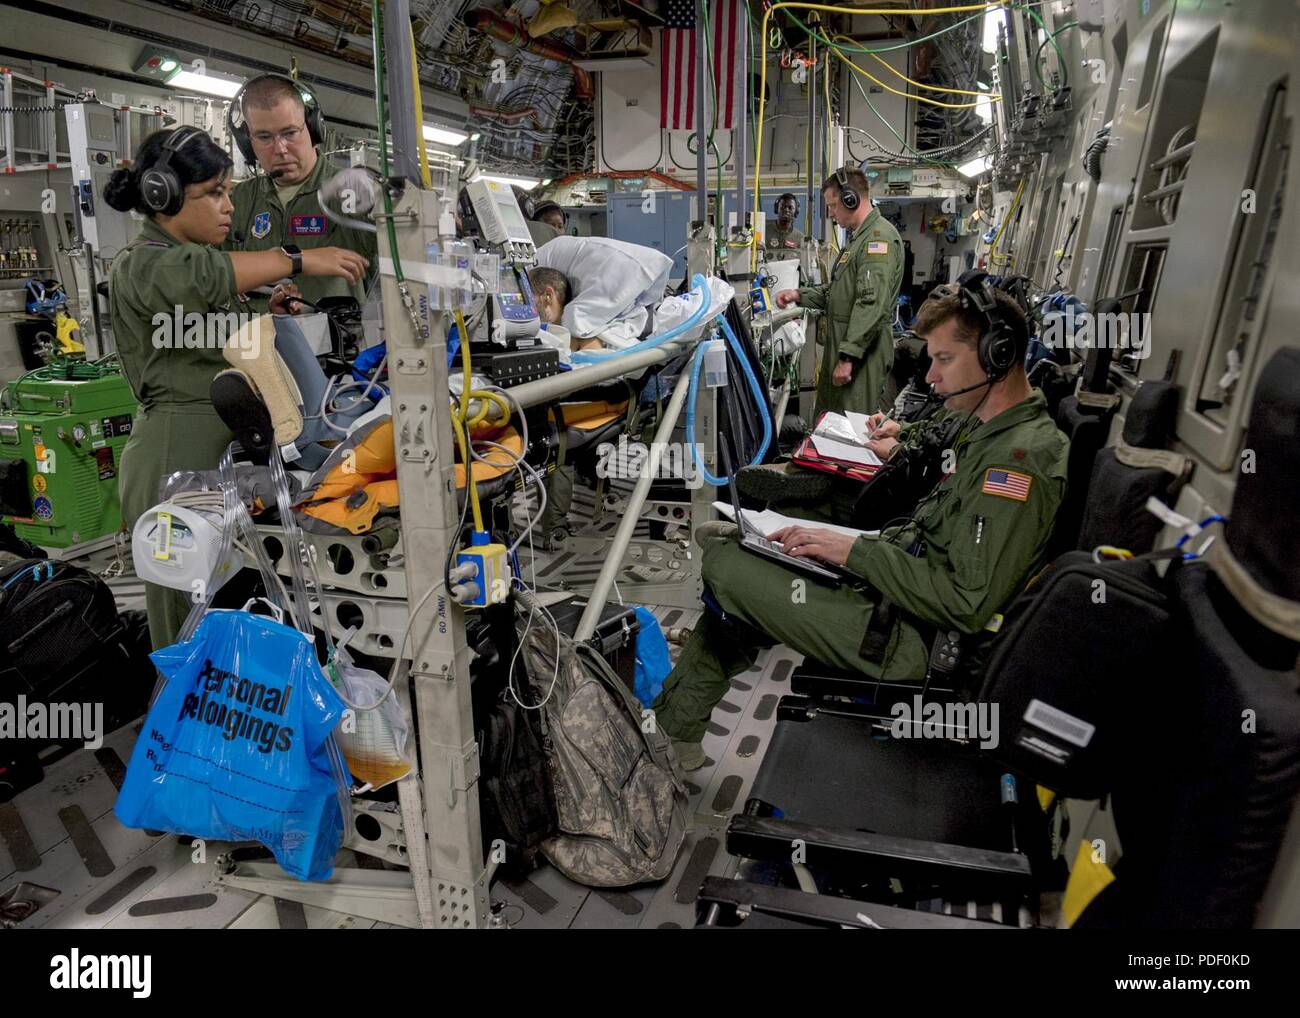 Critical Care Transport Teams Stock Photos Electrical Wiring Joints Pdf Air And Aeromedical Evacuation Provide Medical Attention To Patients